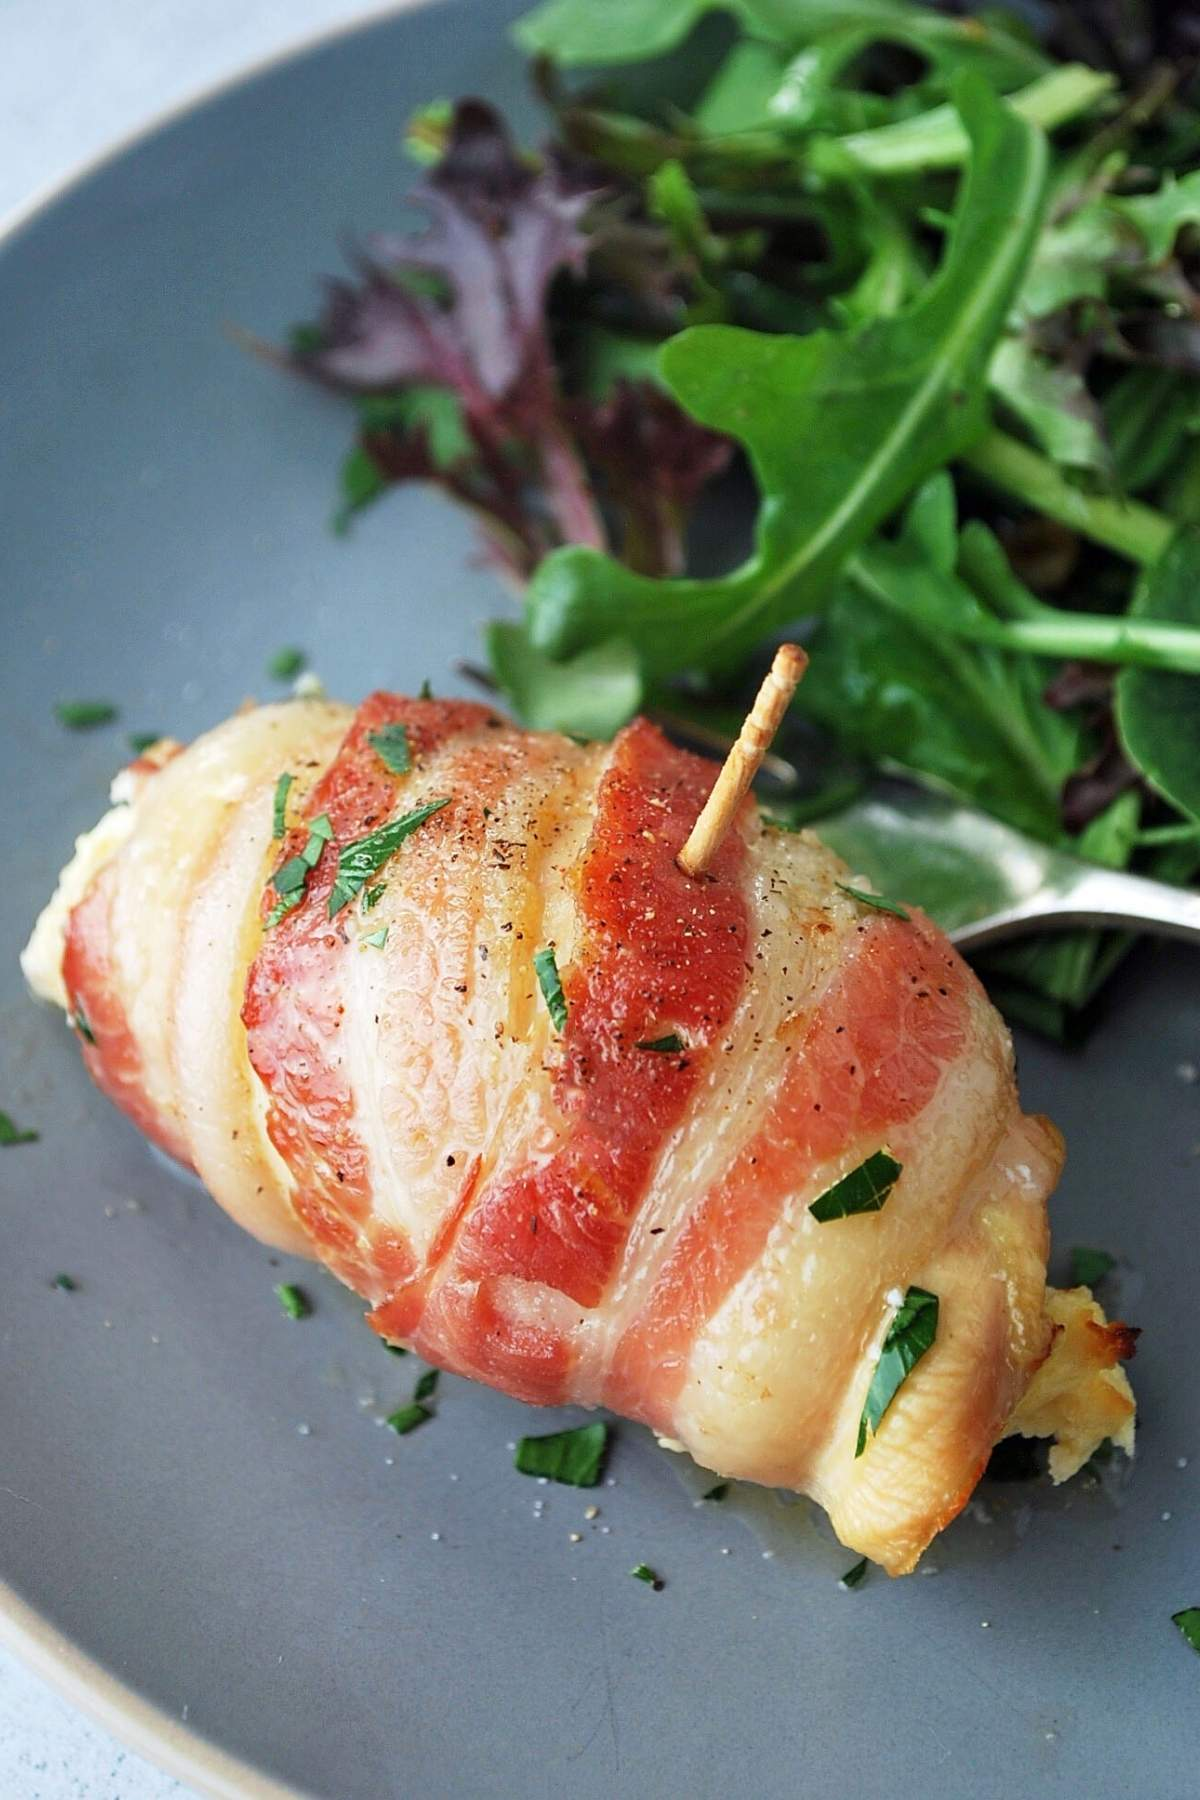 Tex-Mex bacon-wrapped chicken on a plate with salad and a fork